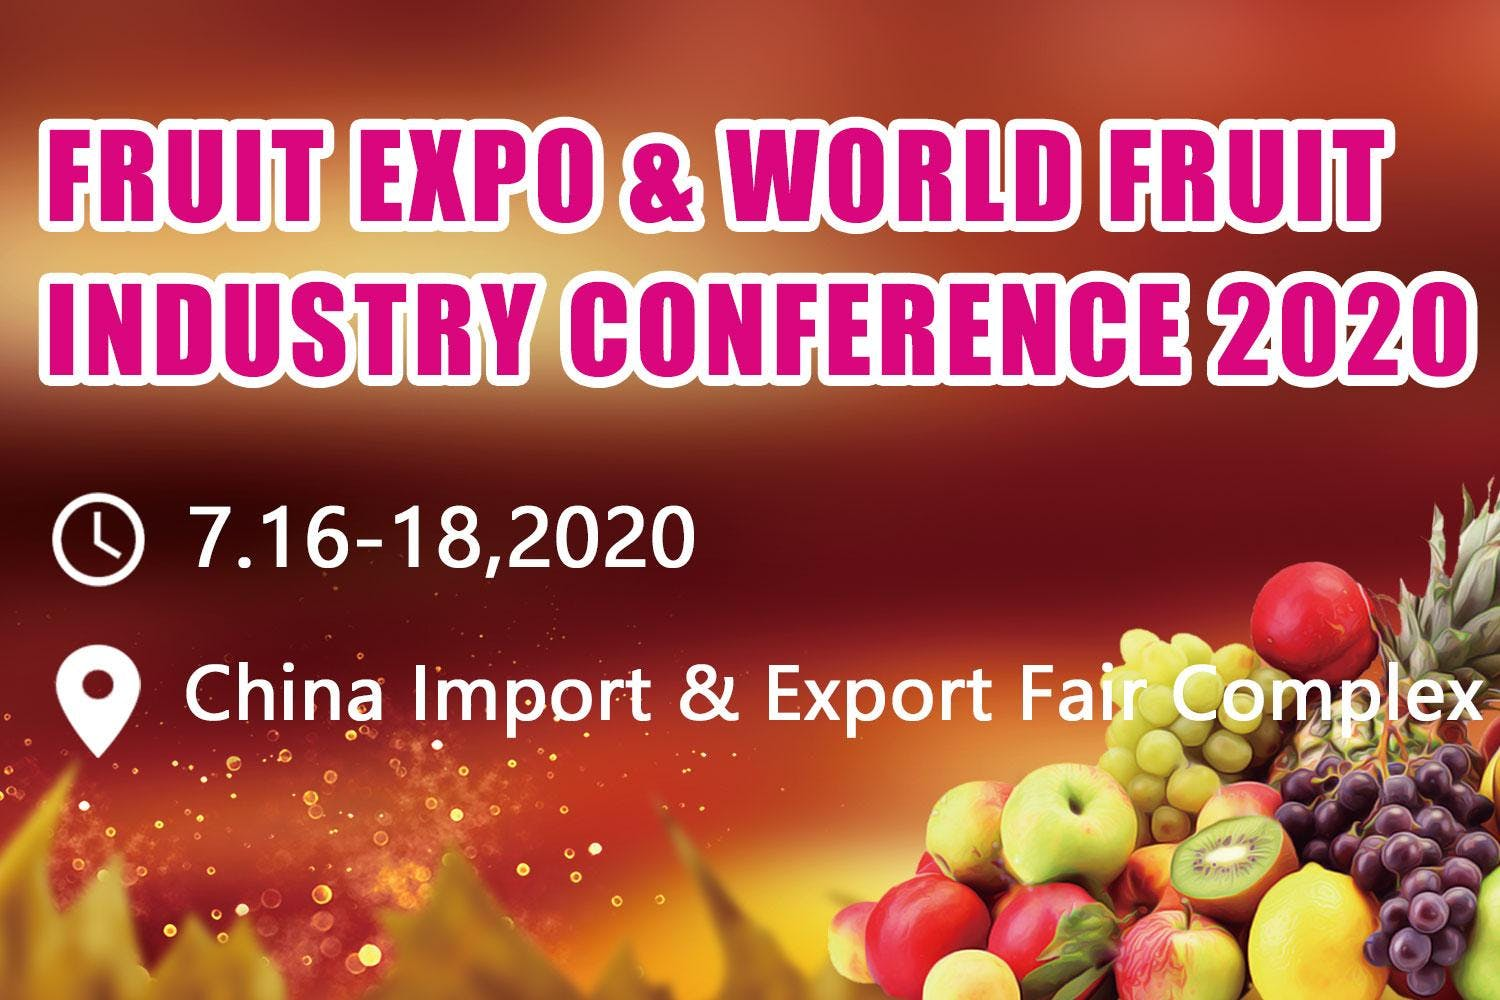 Fruit Expo & World Fruit Industry Conference 2020